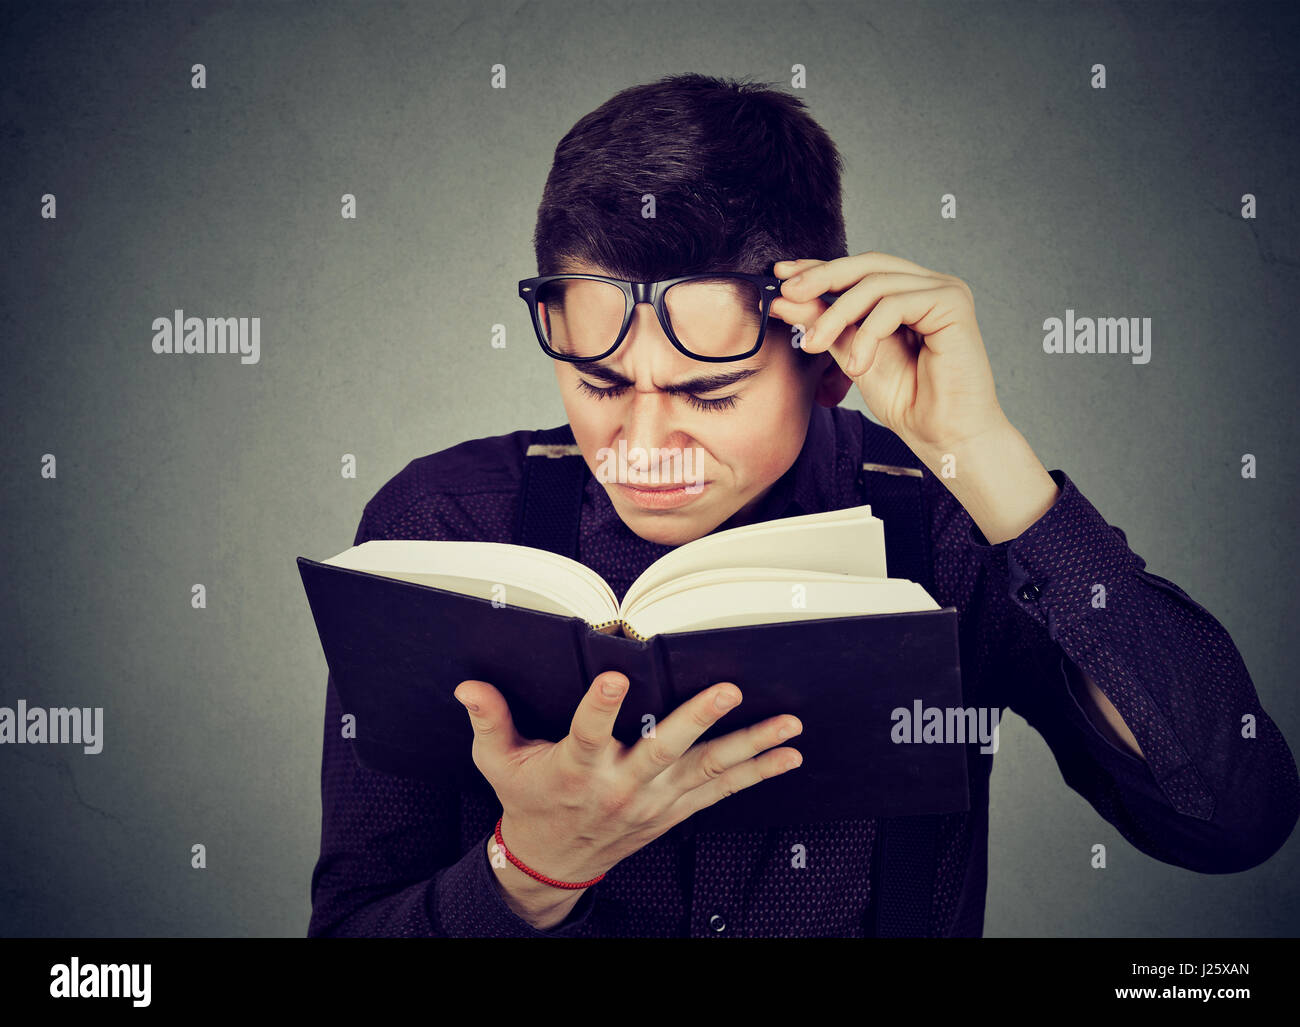 Closeup young man with eye glasses trying to read book, having difficulties seeing text, has sight problems. Eyesight - Stock Image